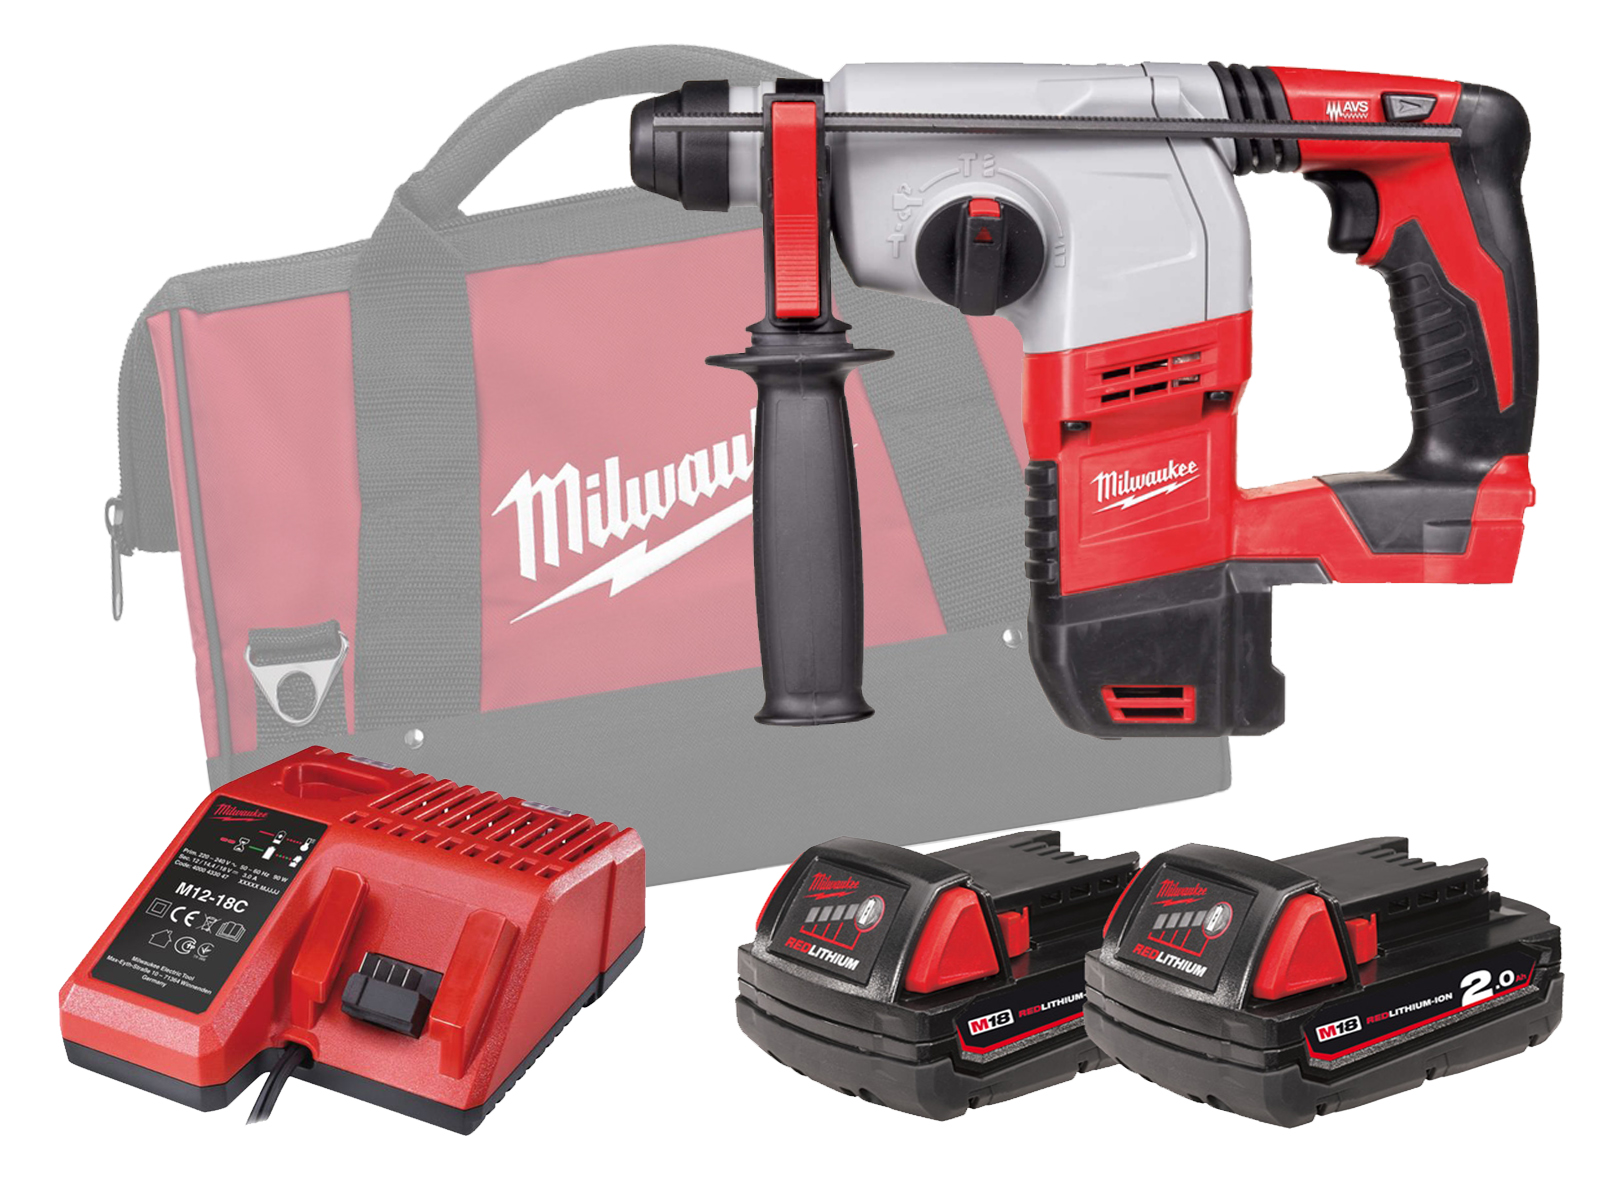 MILWAUKEE 18V BRUSHED 3-MODE SDS PLUS HAMMER - HD18HX - 2.0AH PACK